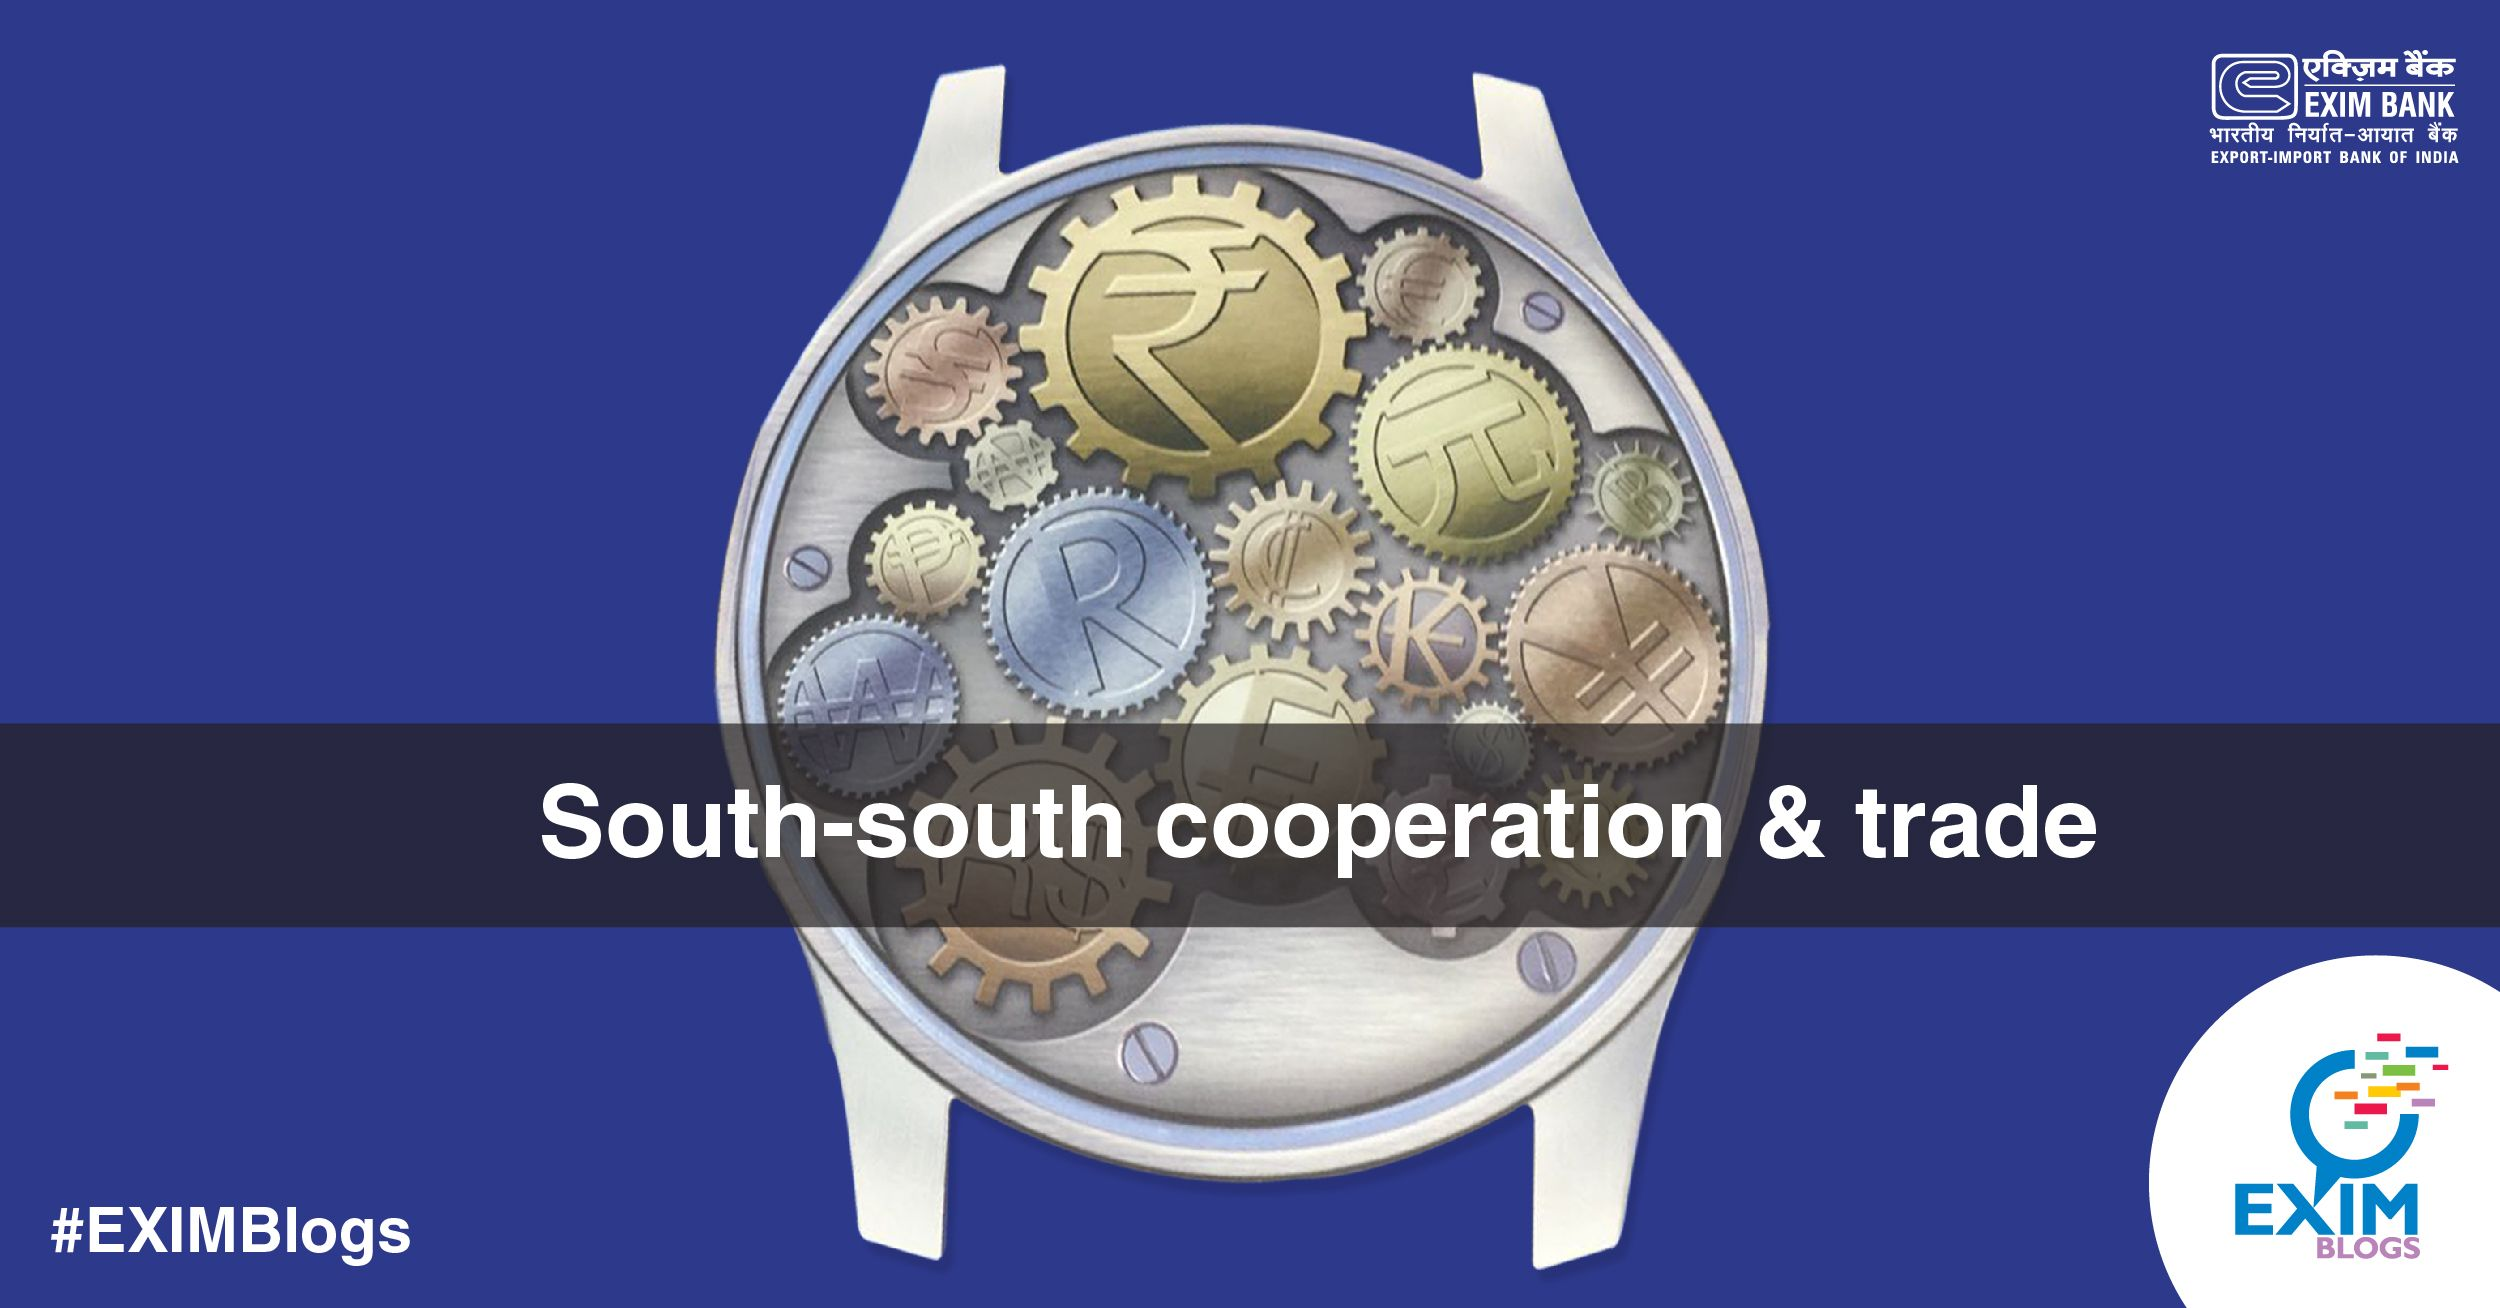 Southsouth cooperation & trade Trading, Cooperation, South